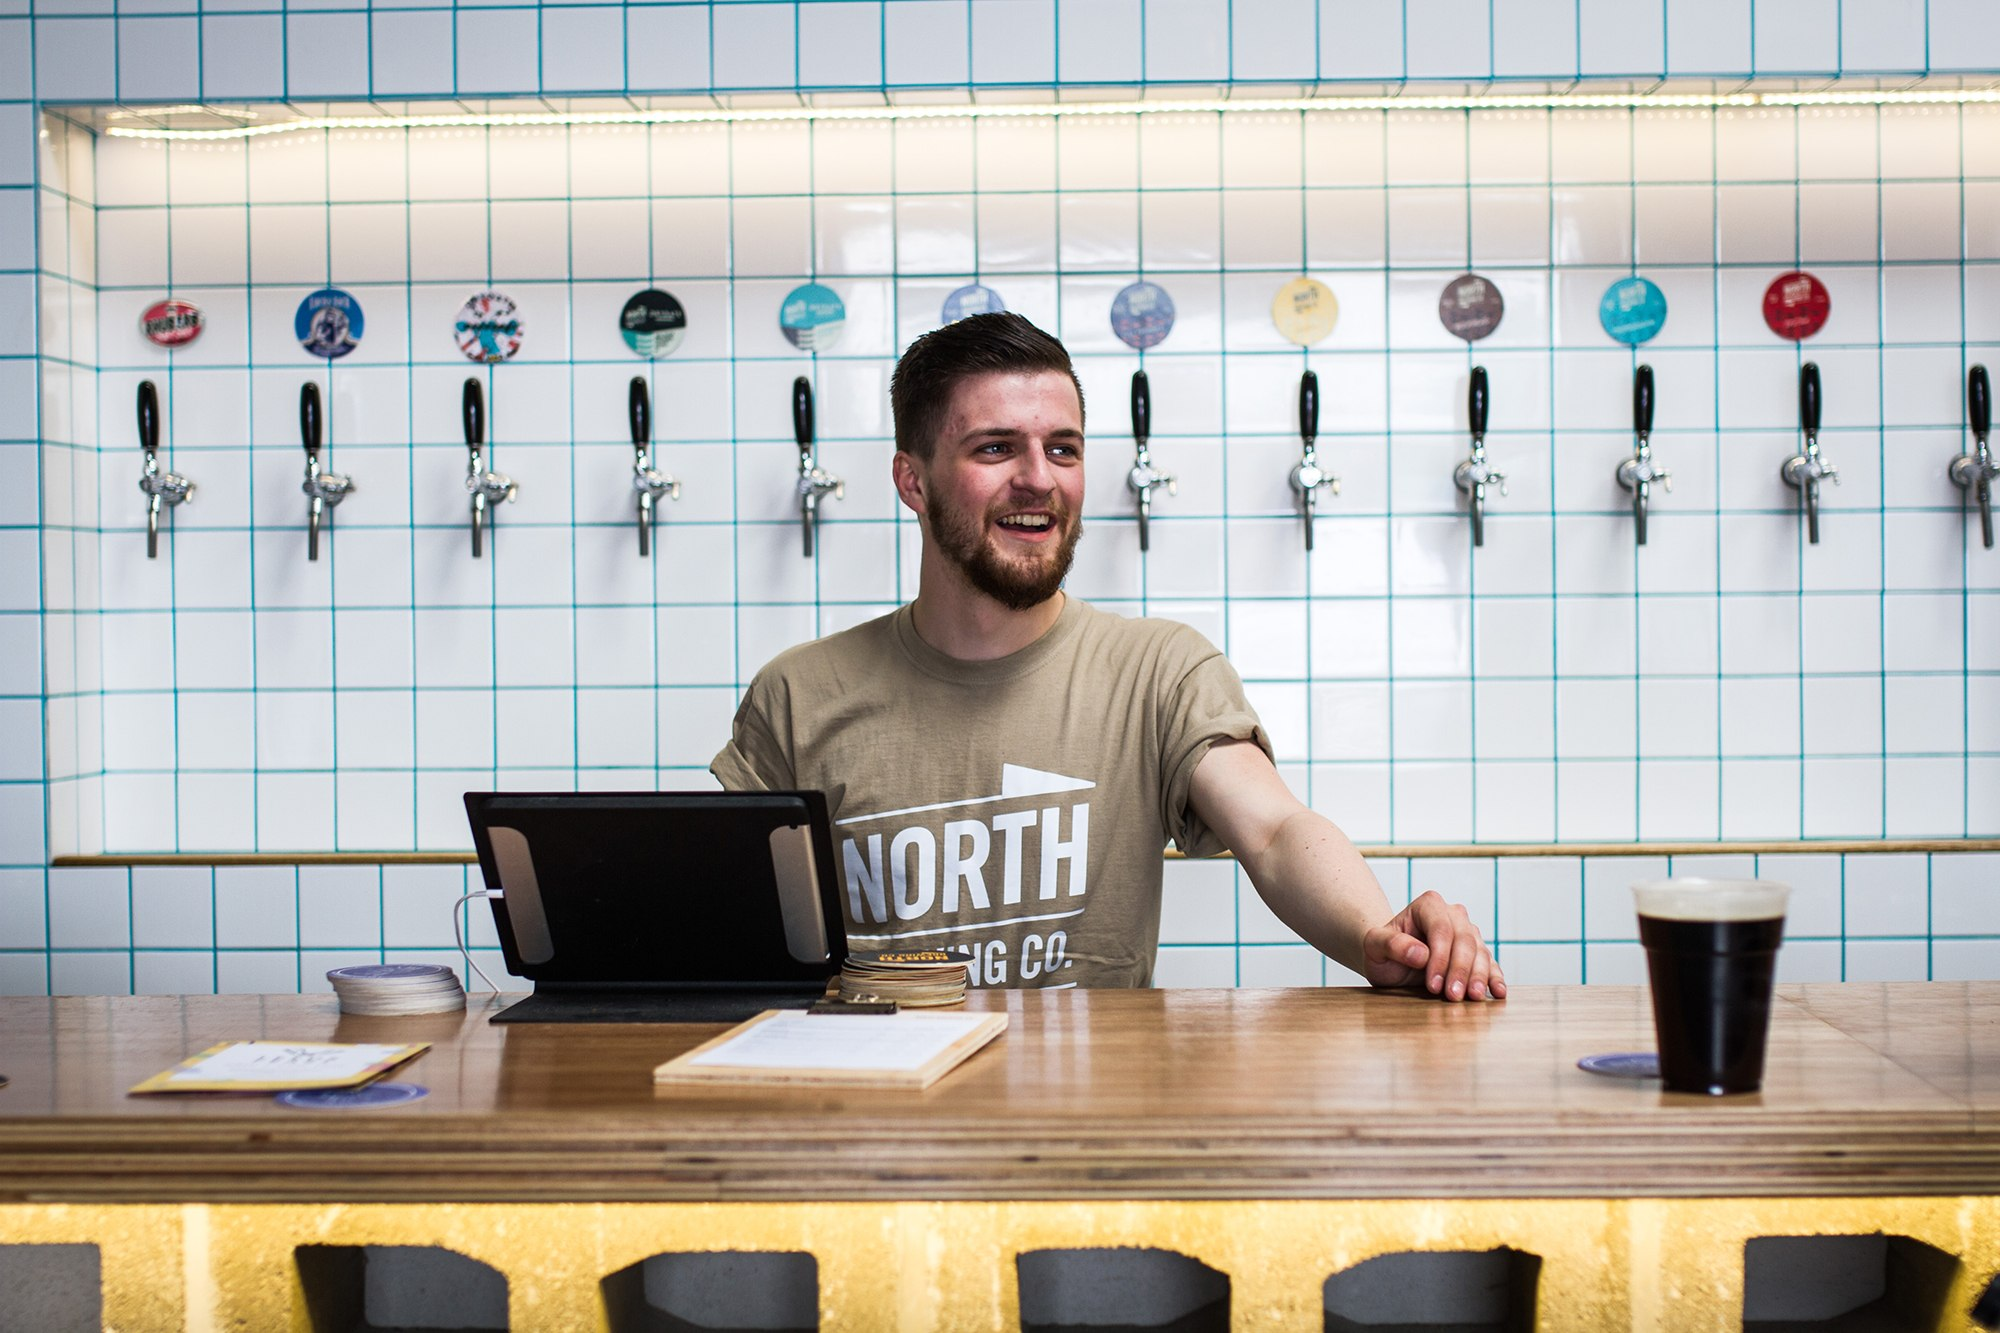 North Brewery Company. Photography by Jessie Leong Photography